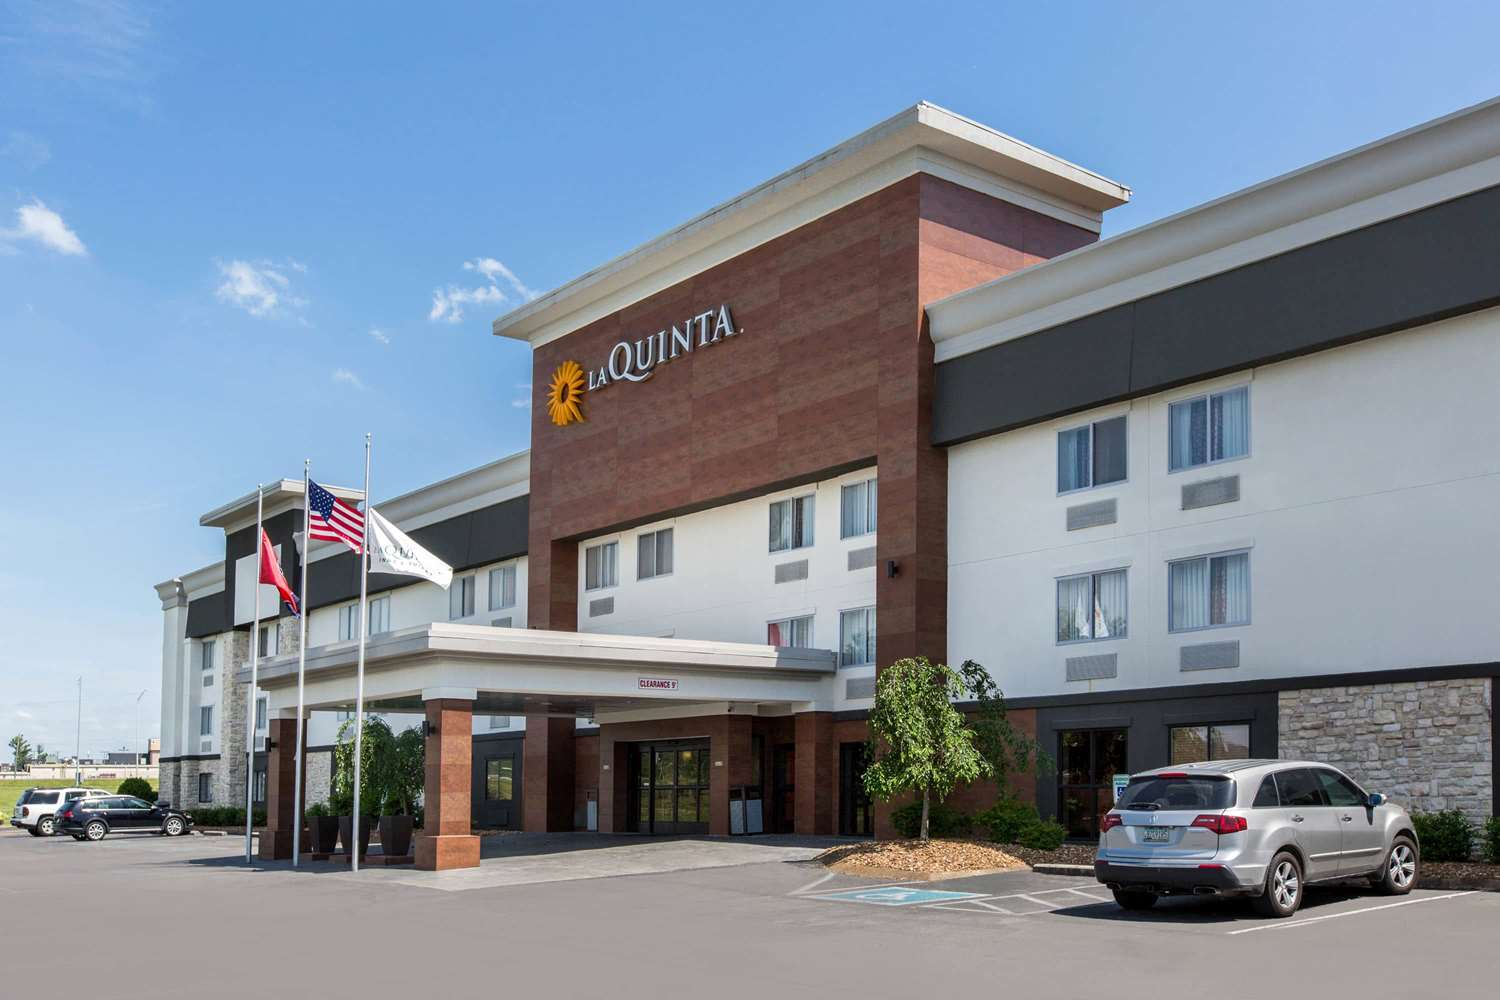 Holiday Inn Express Suites Goodlettsville